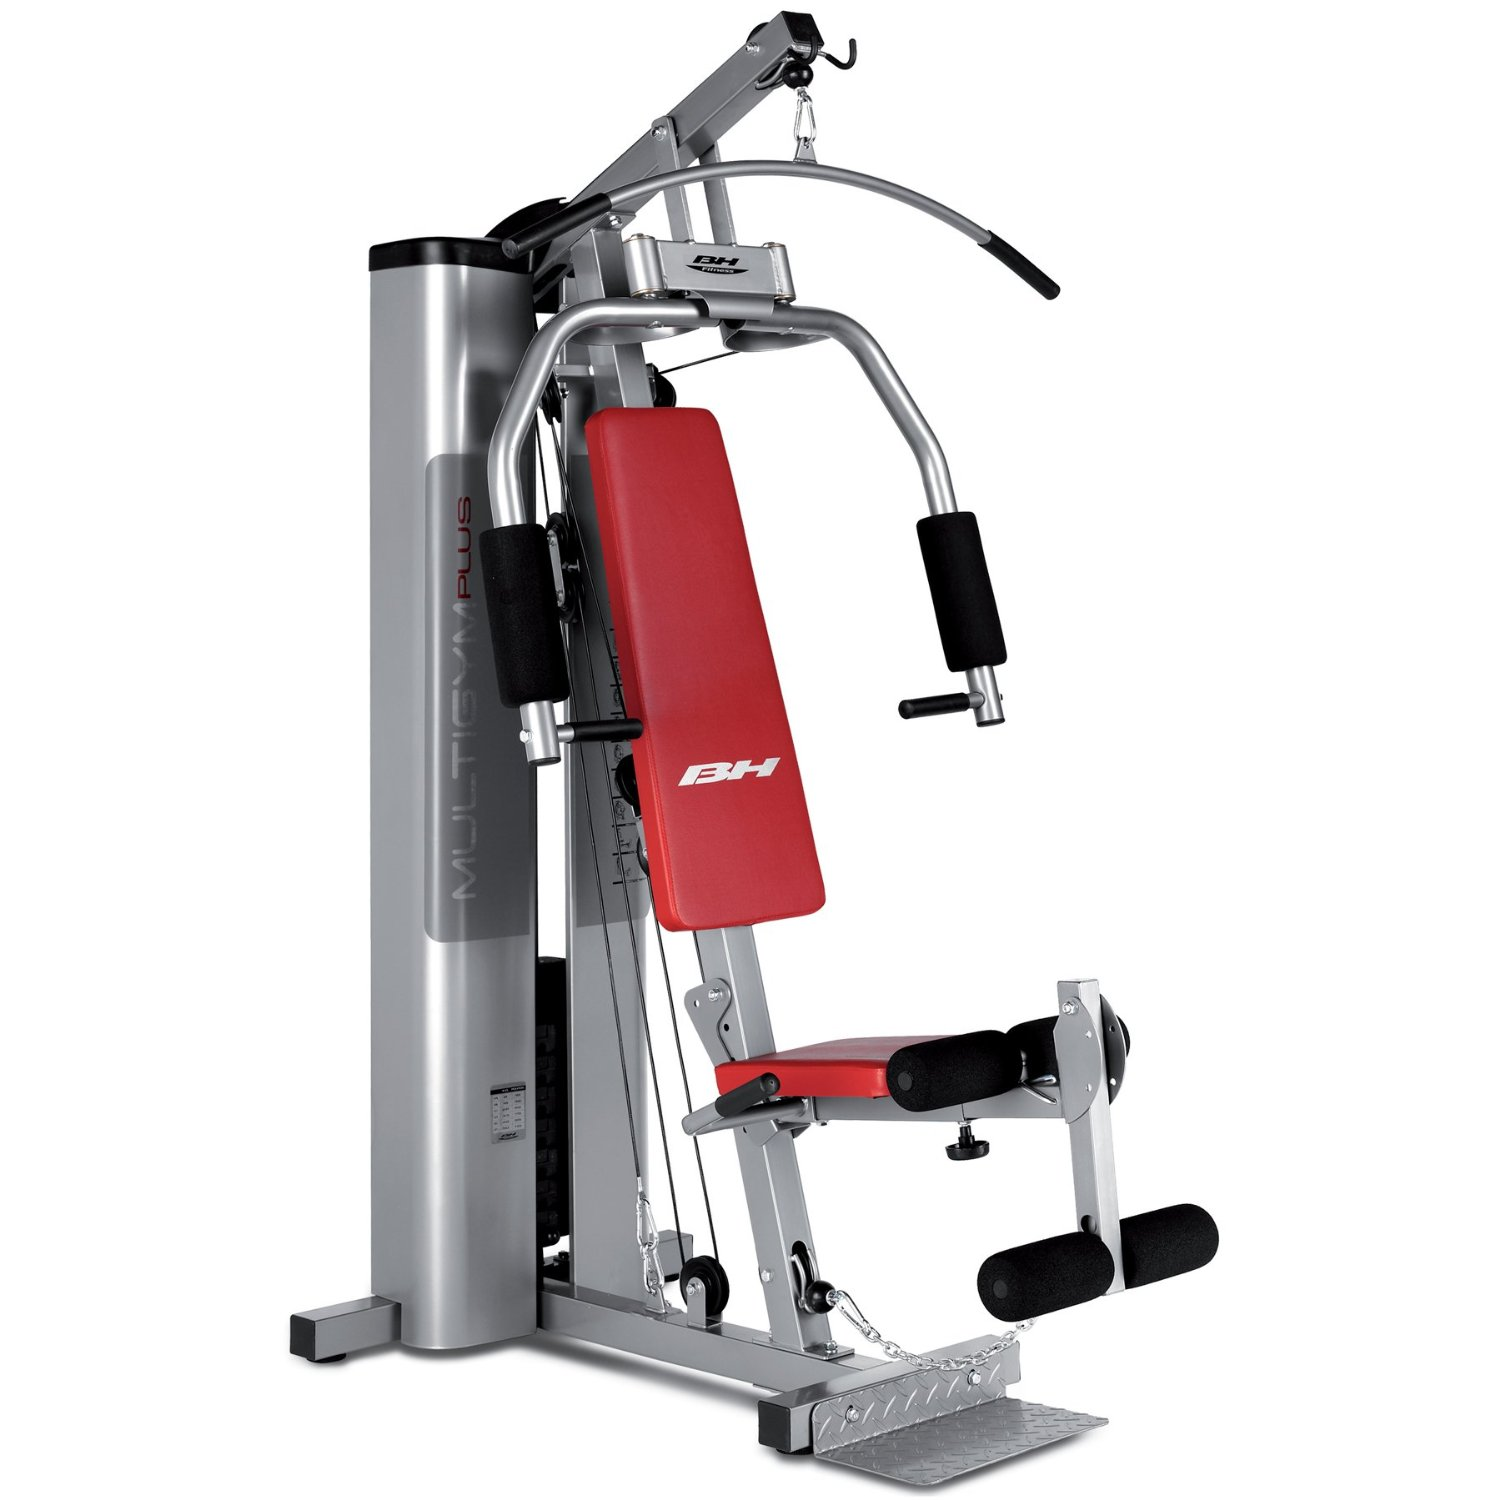 BH Fitness Multi Gym Plus Titanium Home Gym Review